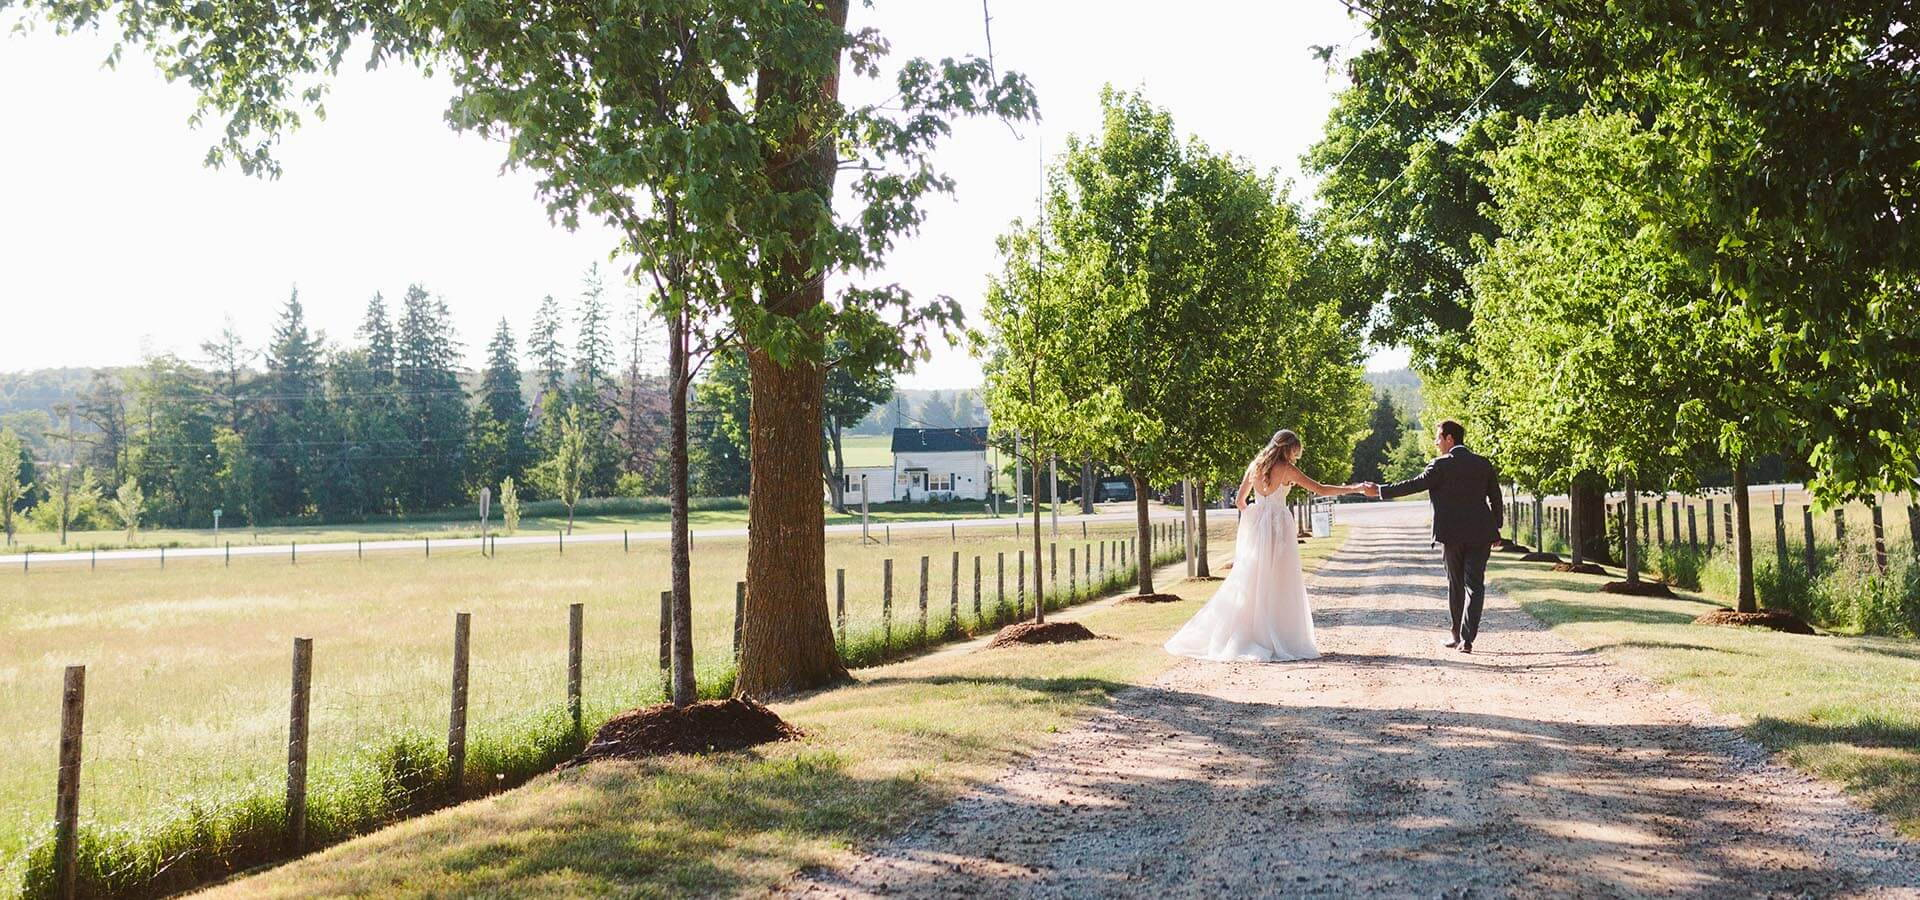 Hero image for Ali and Cory's Rustically Chic Wedding at Cambium Farms